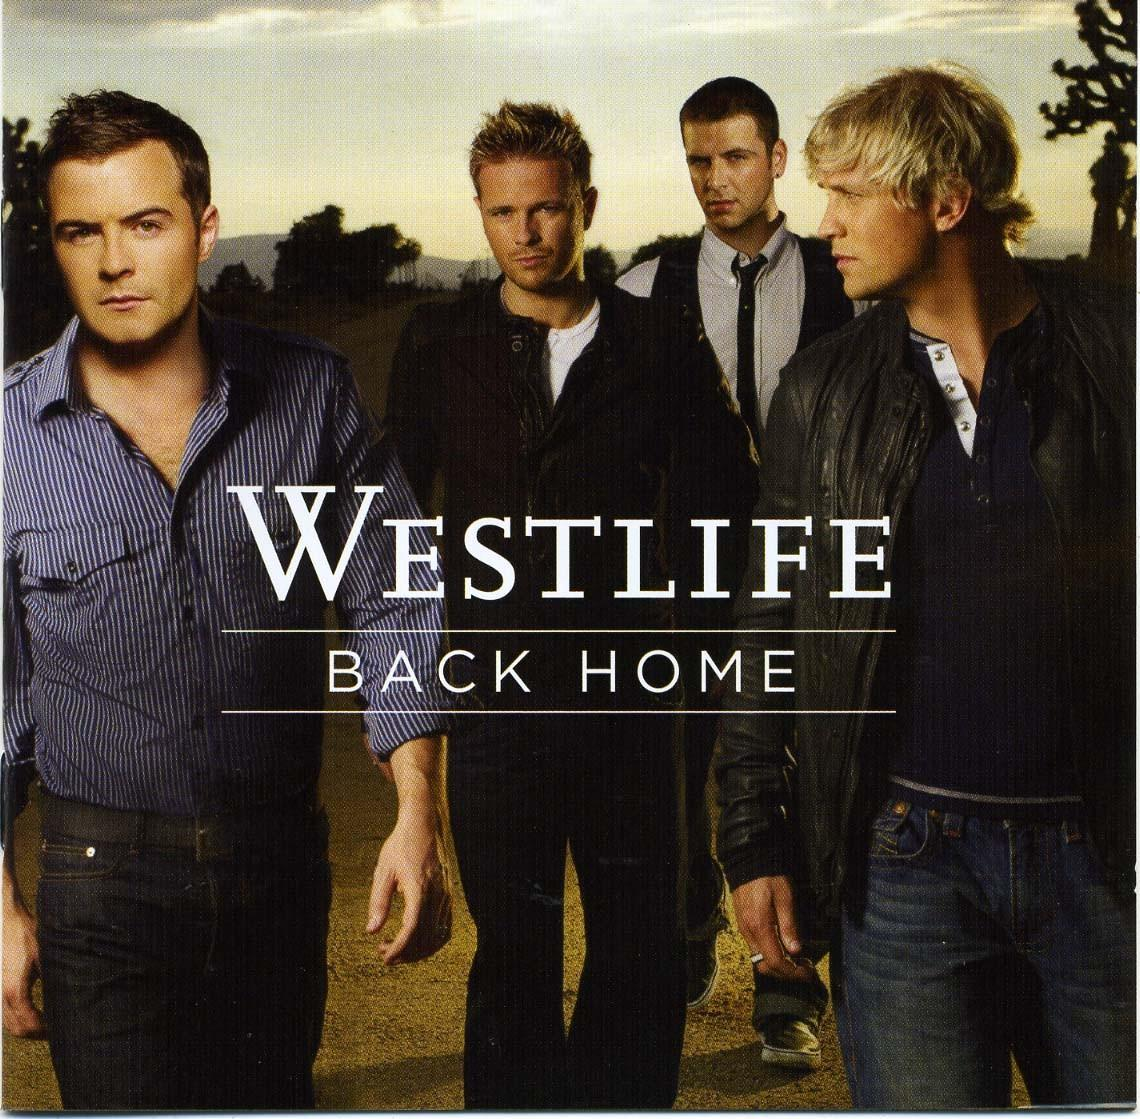 Rock Artist Biography Westlife Biography